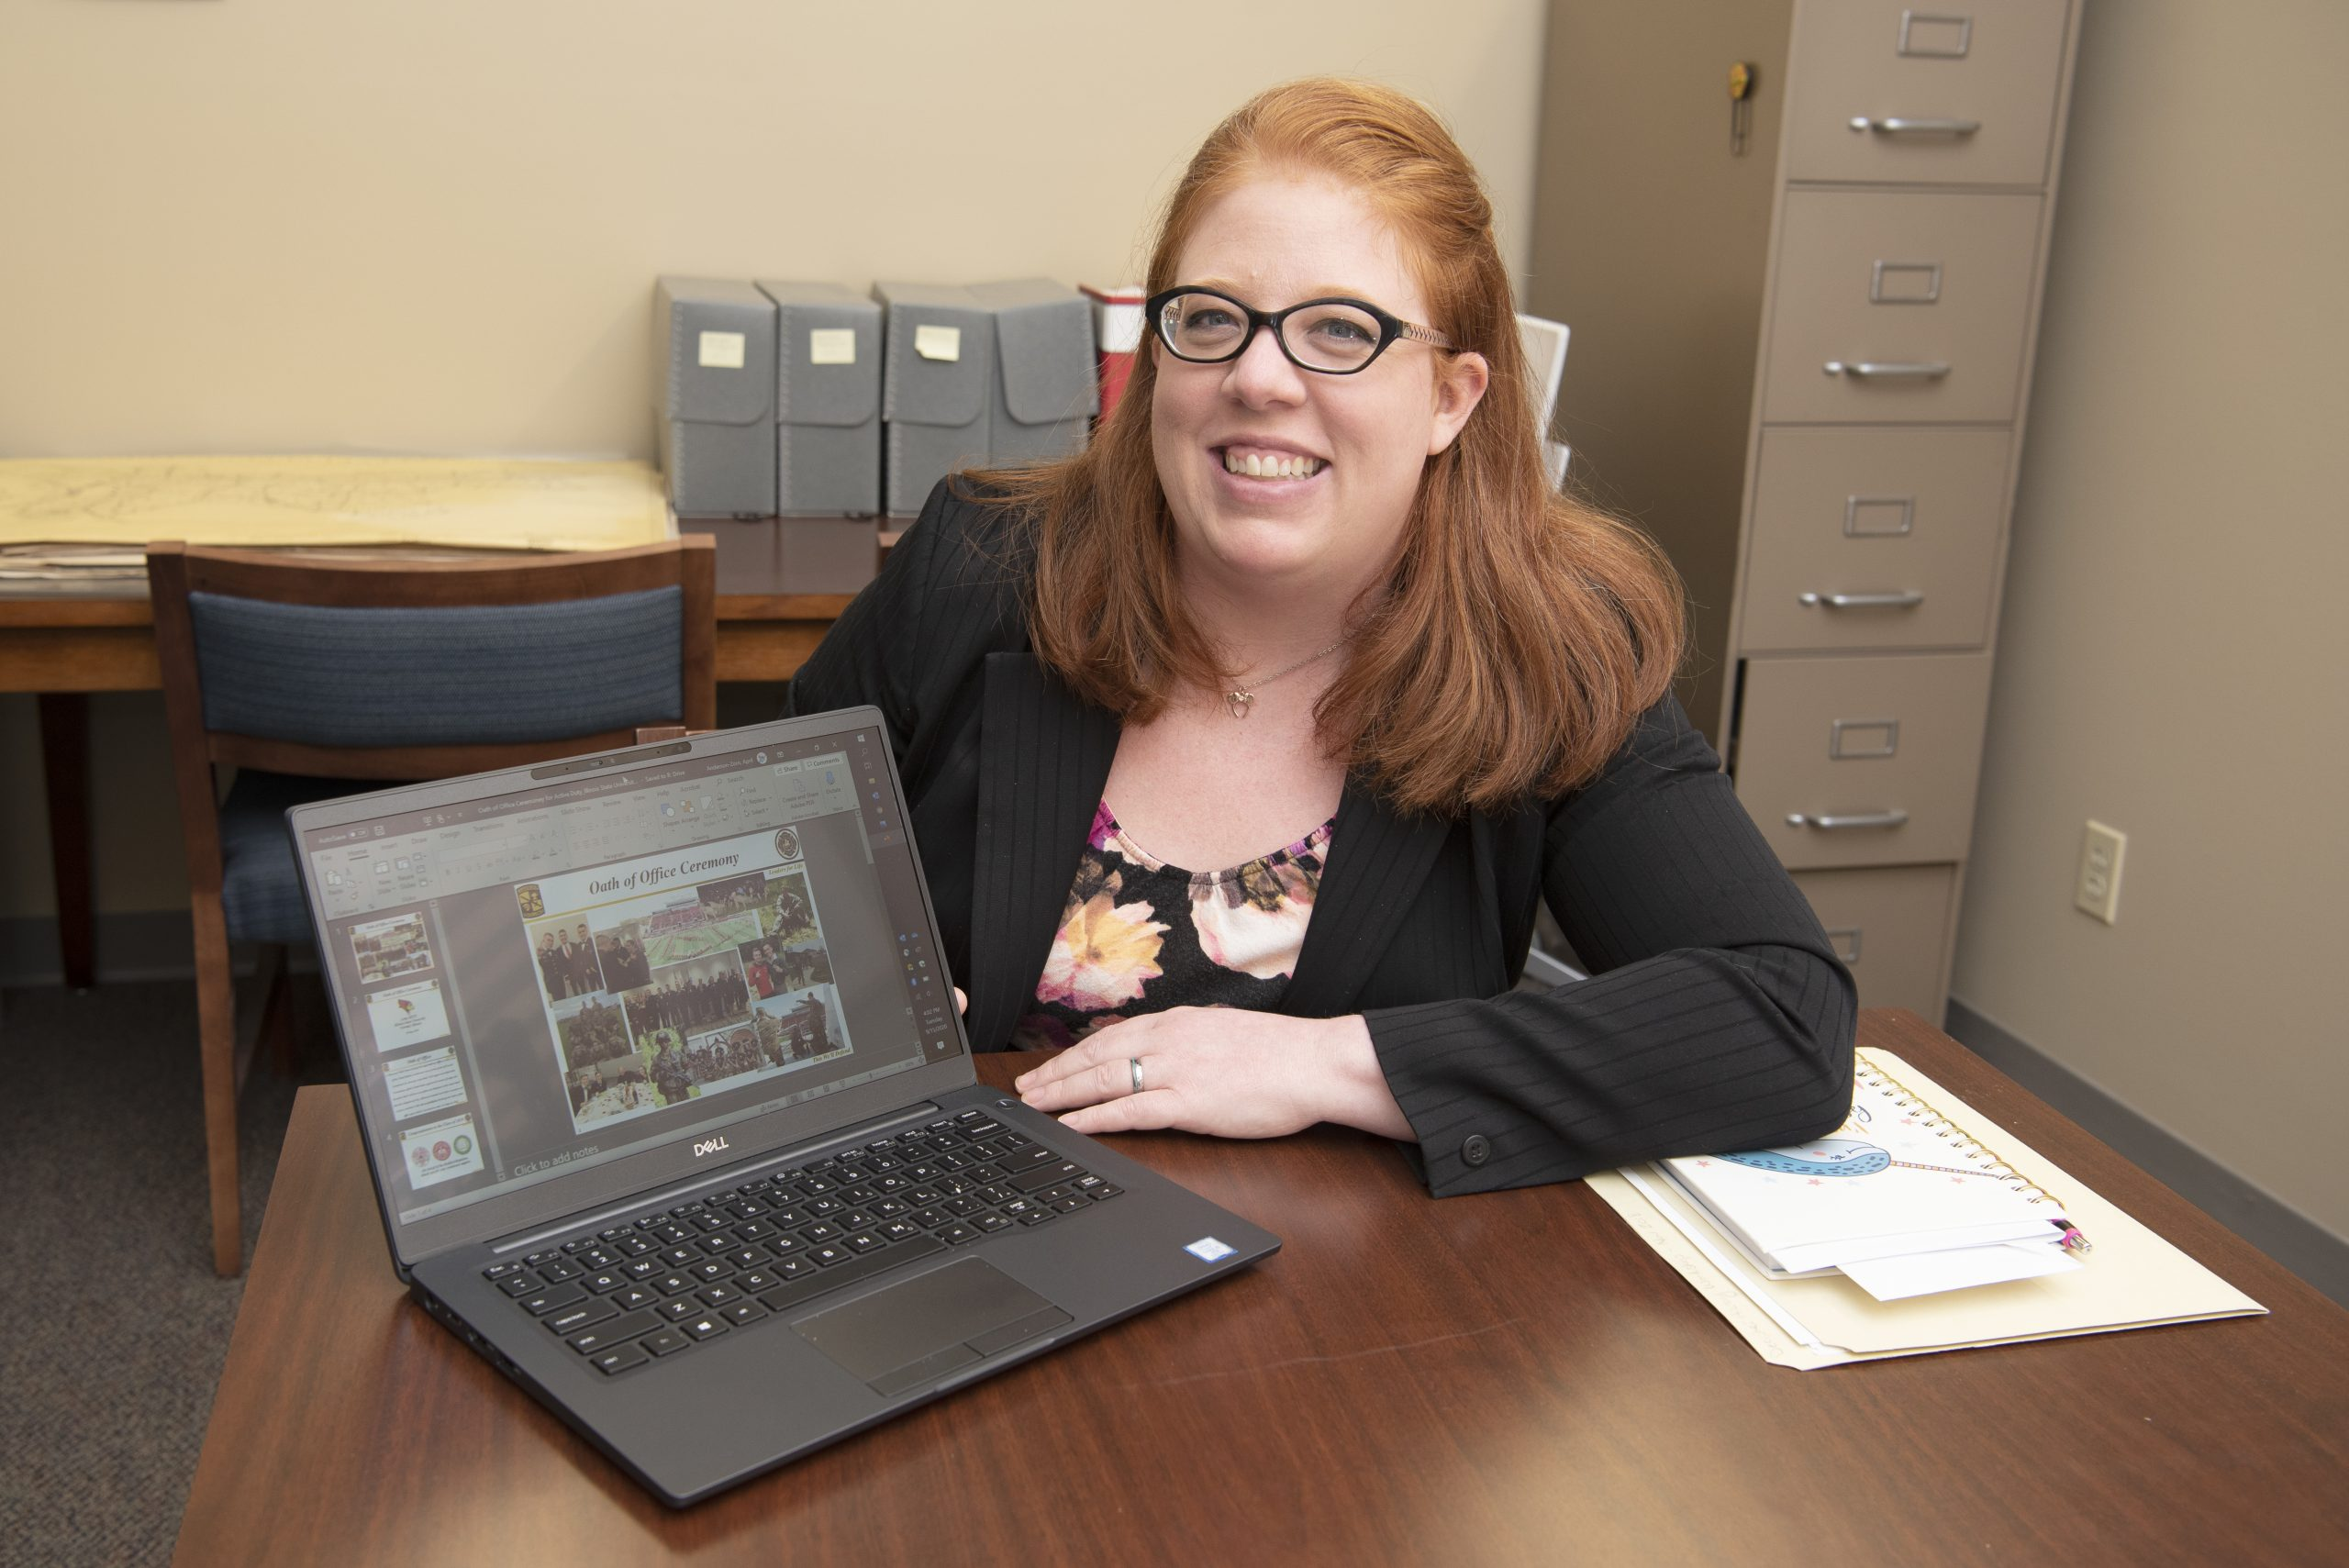 Woman showing digital archives